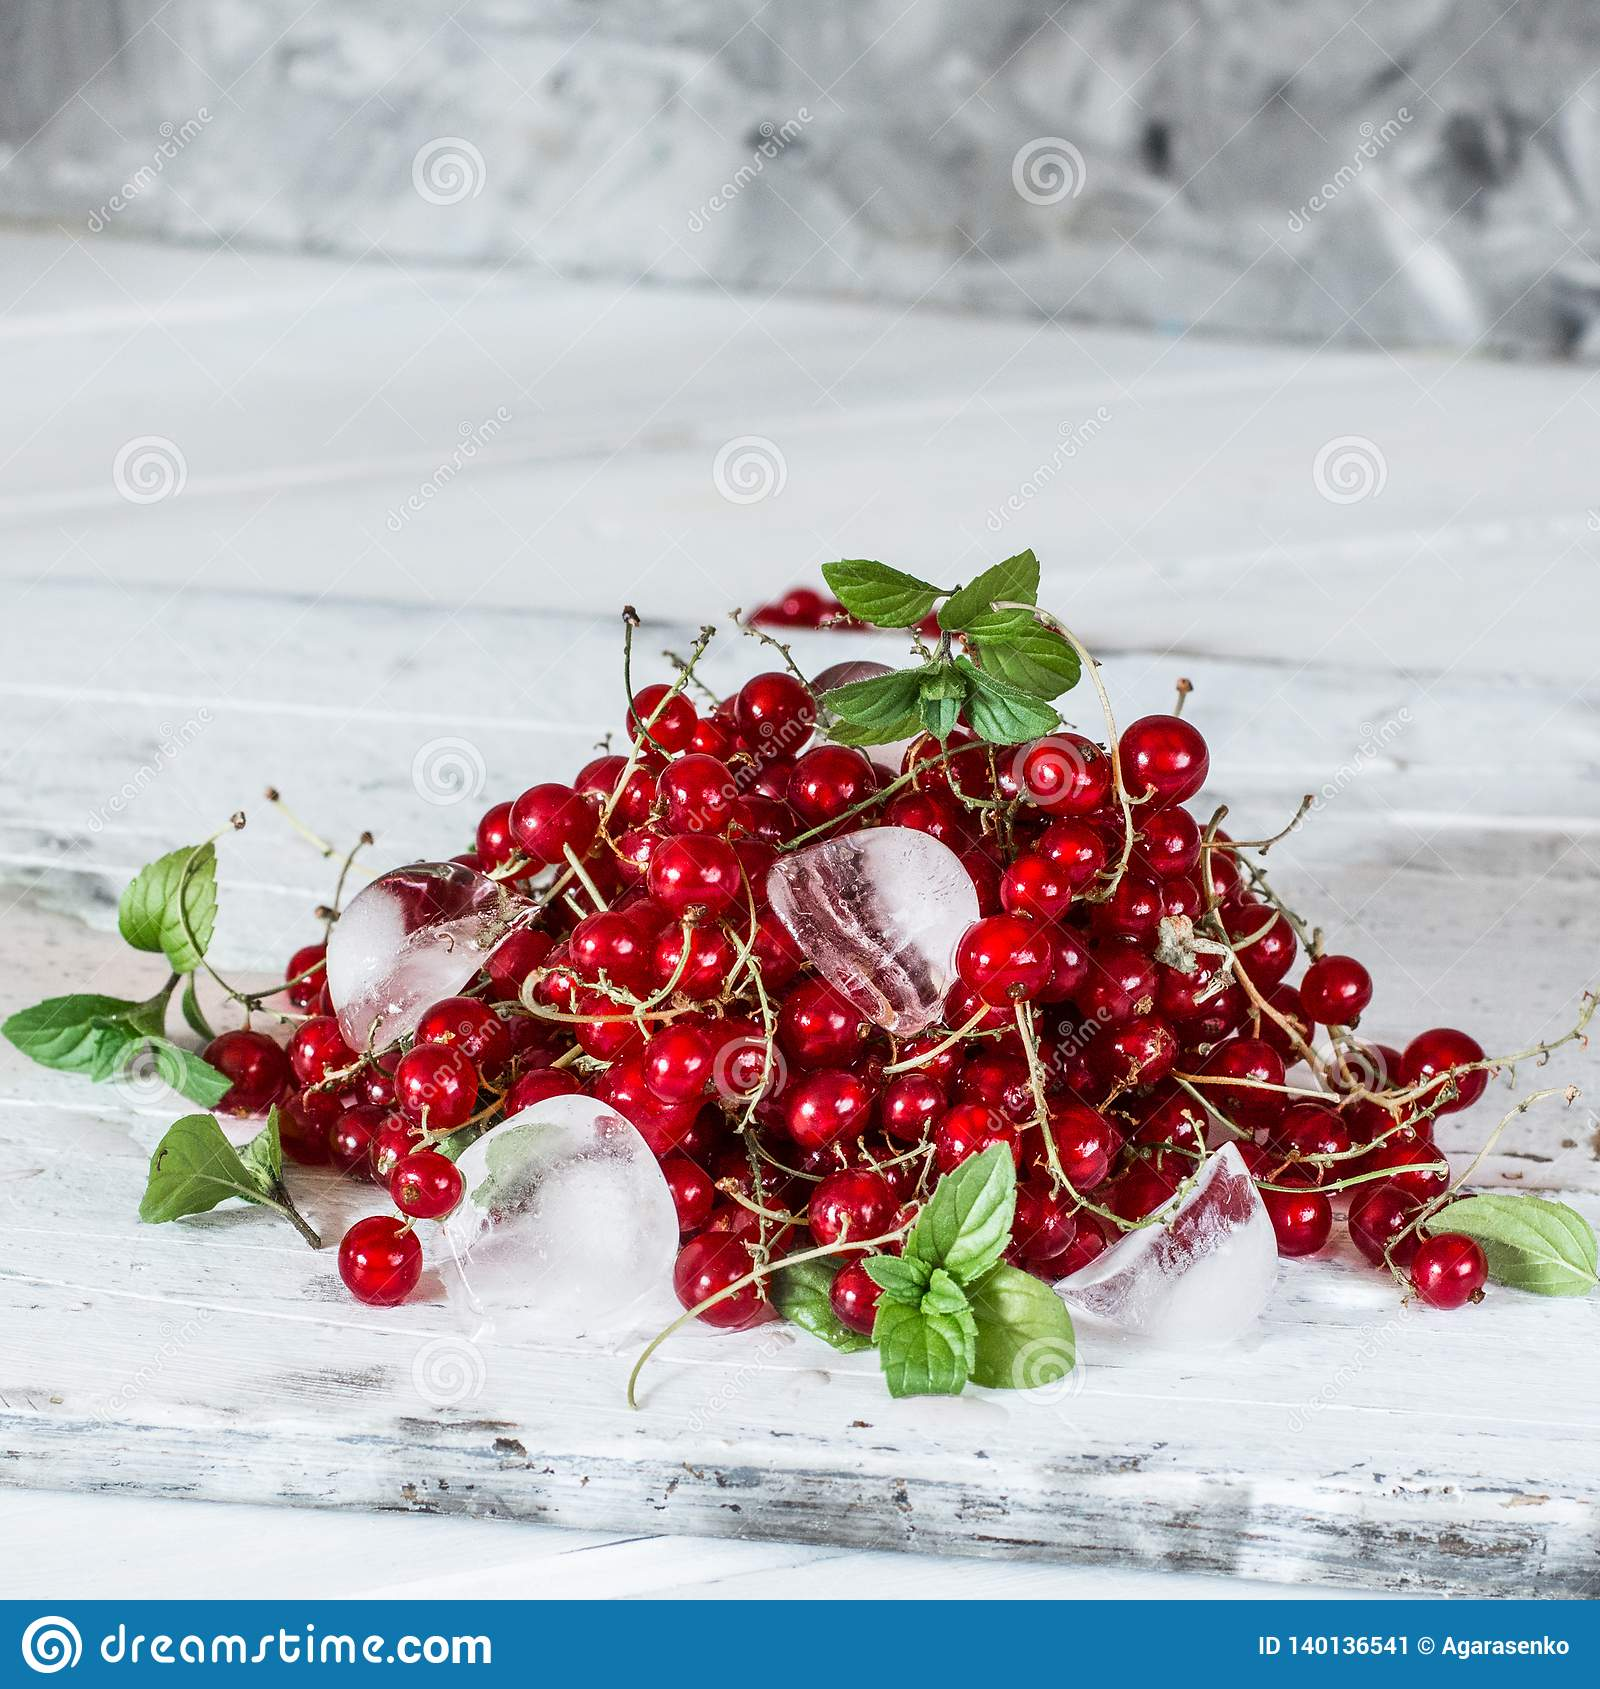 Red currant with ice and green leaves on white wooden background. Still life of food. Cubes of ice with berries.